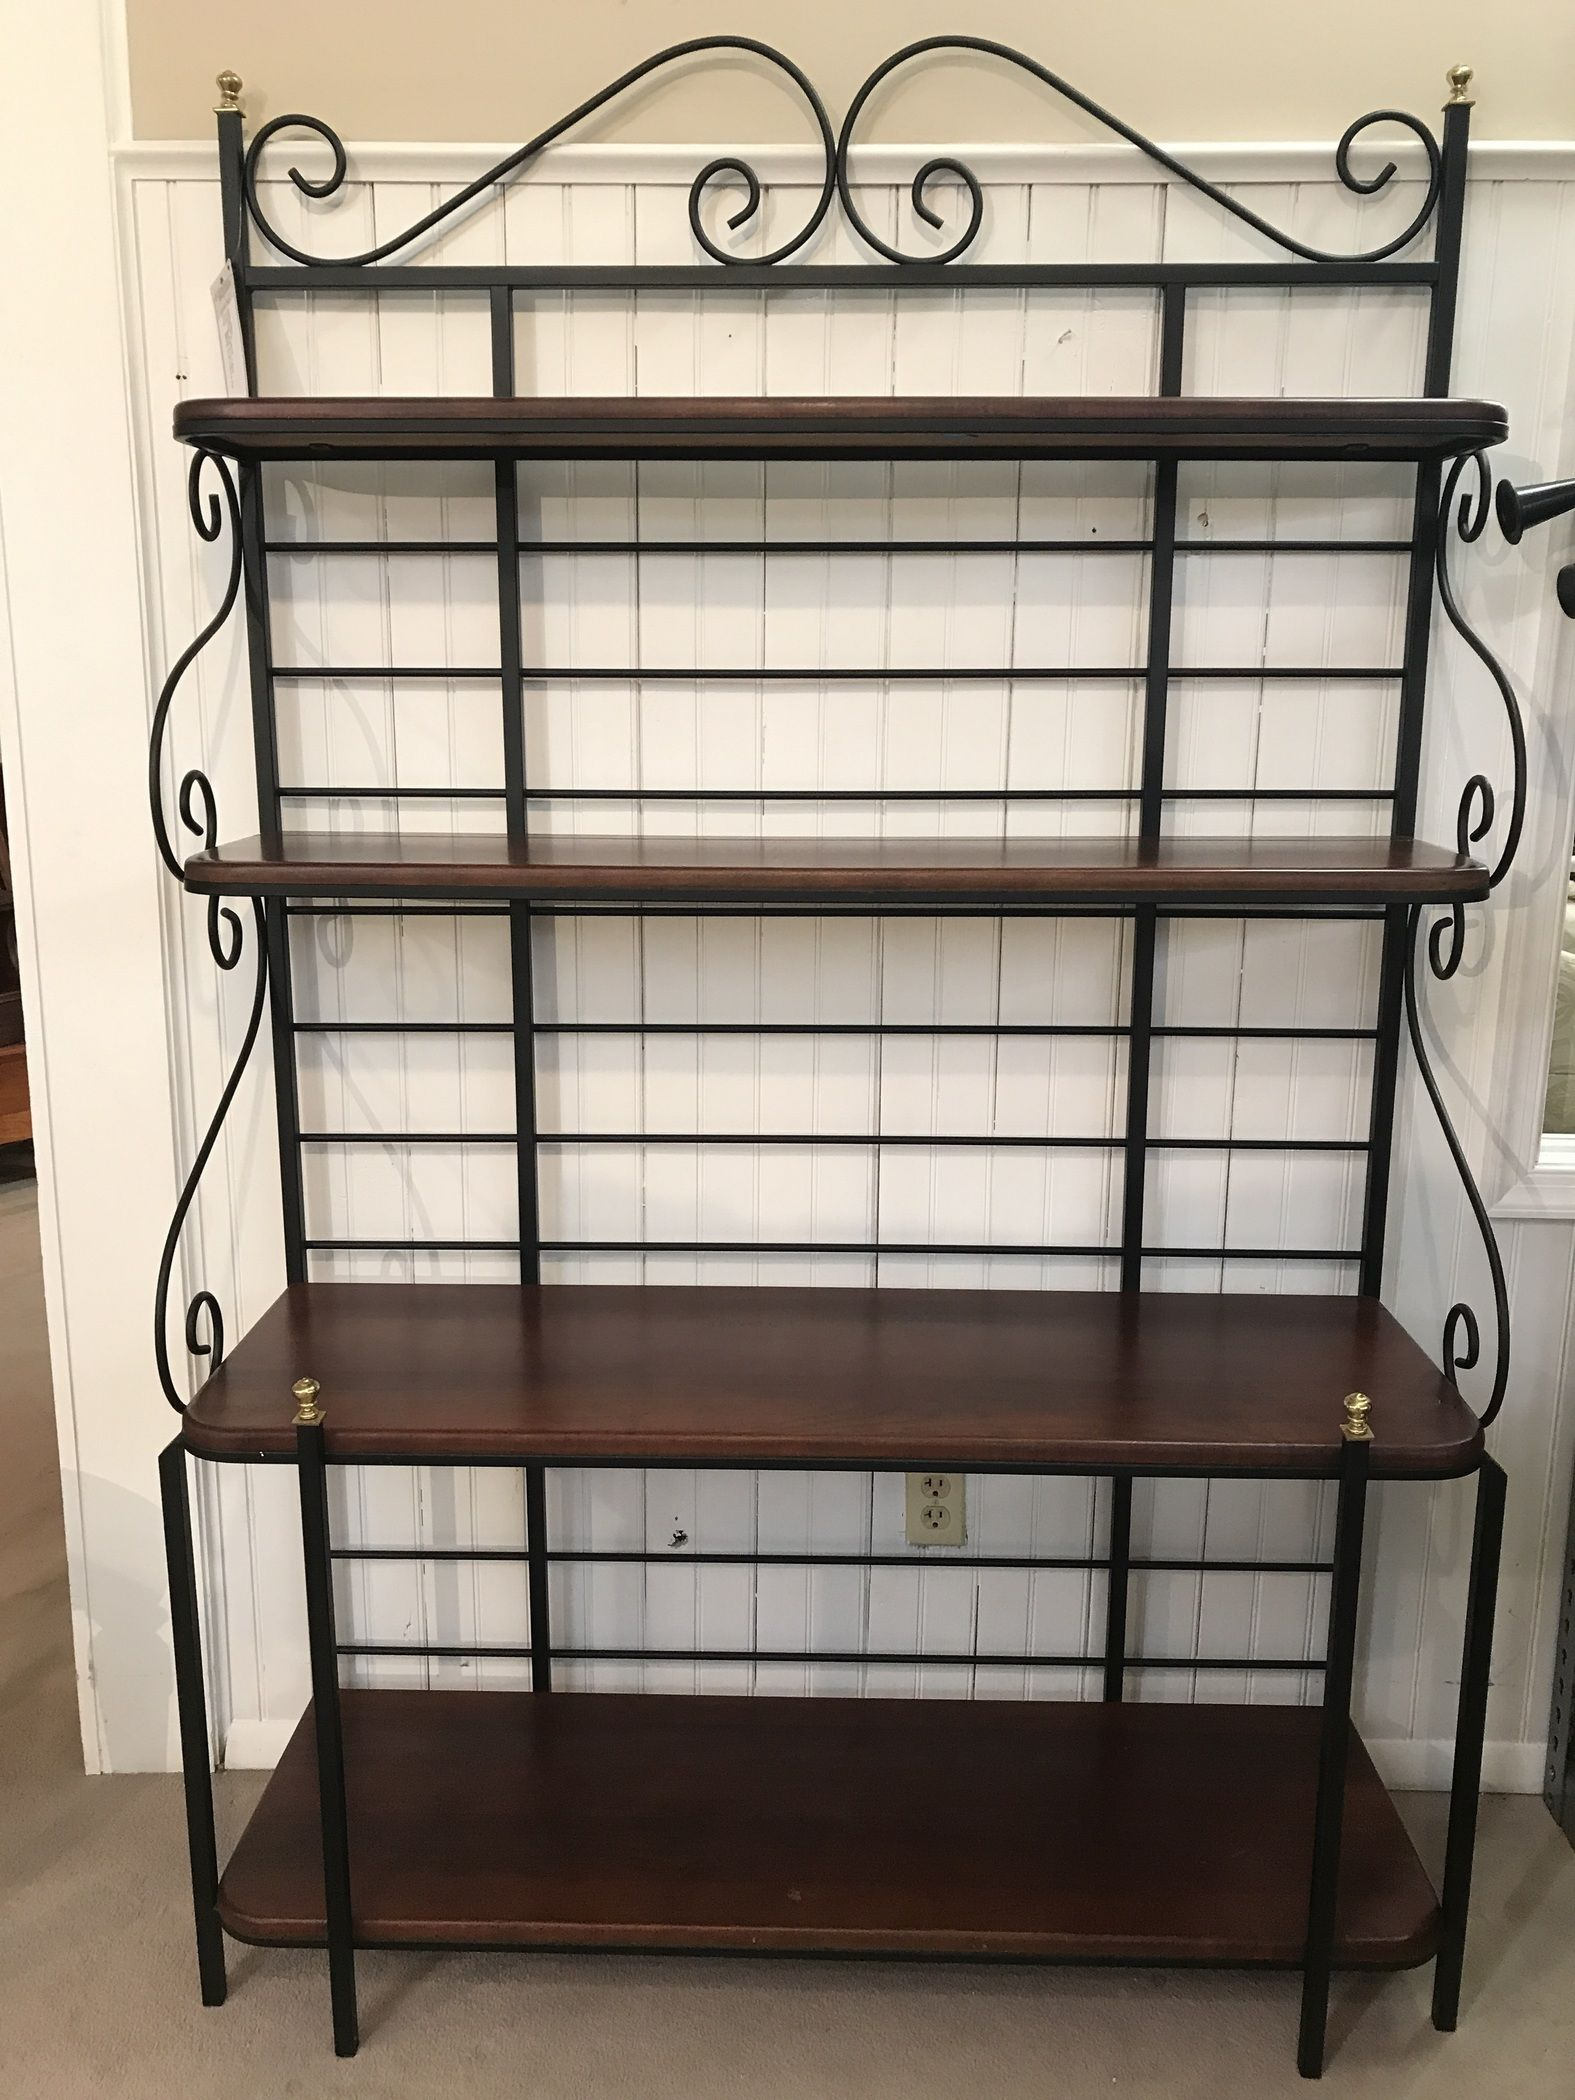 Black Rod Iron Dining Room Glass With Bakers Rack